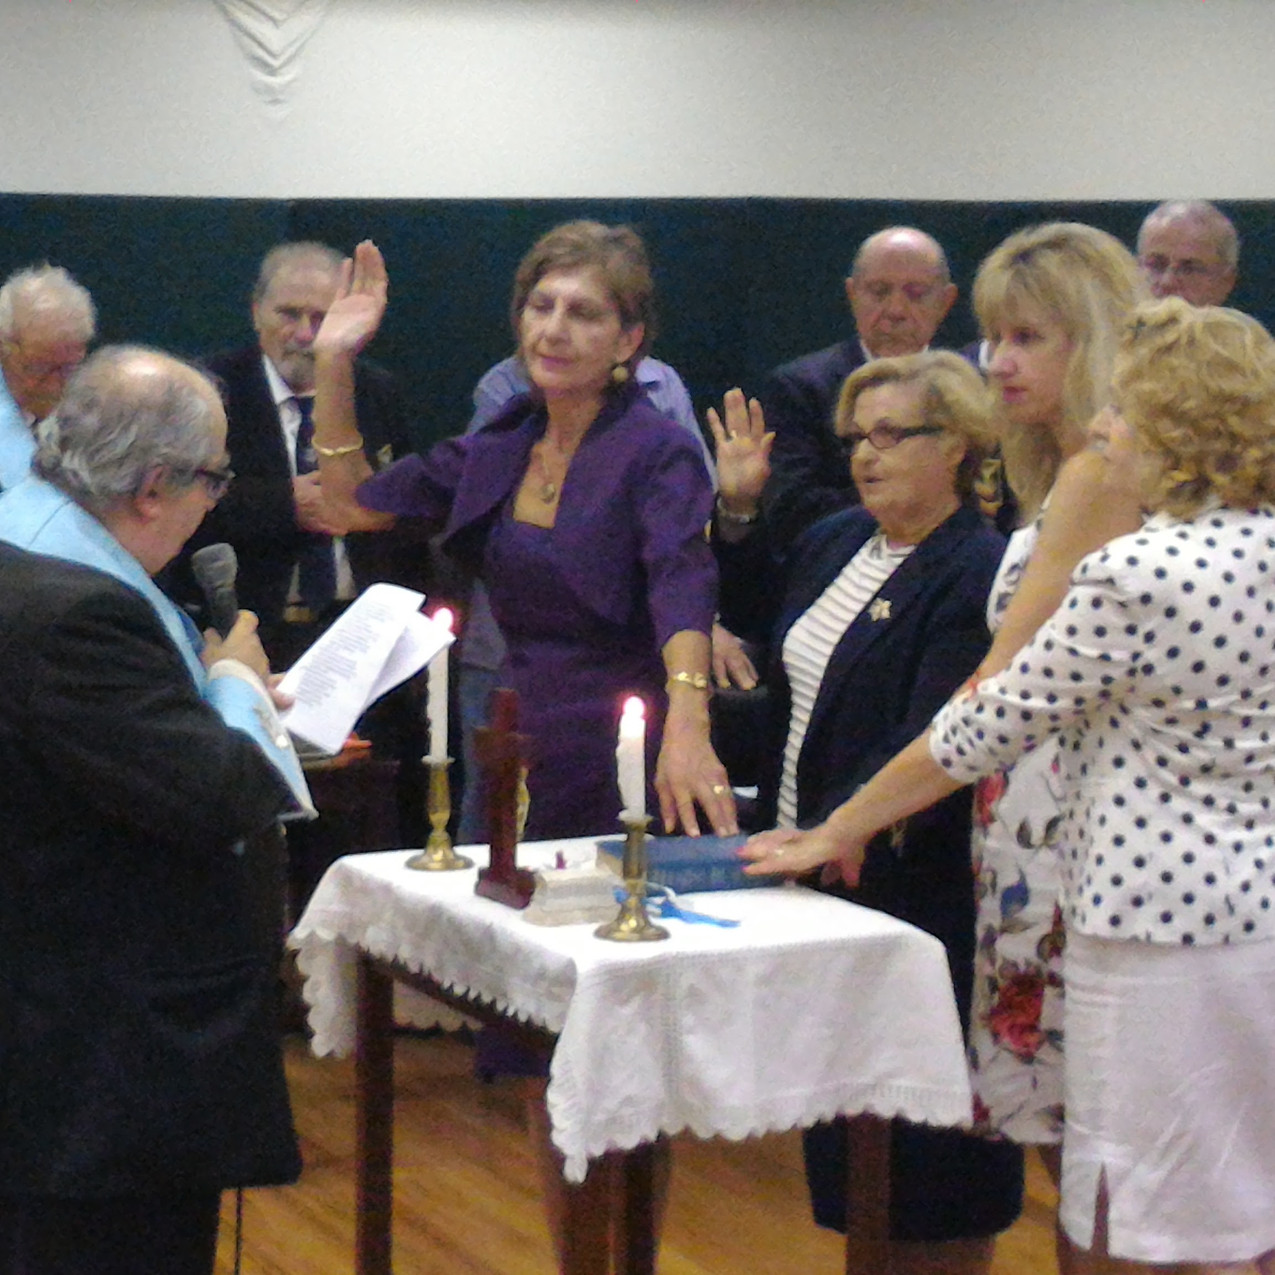 Four new sisters joining AHEPA NSW